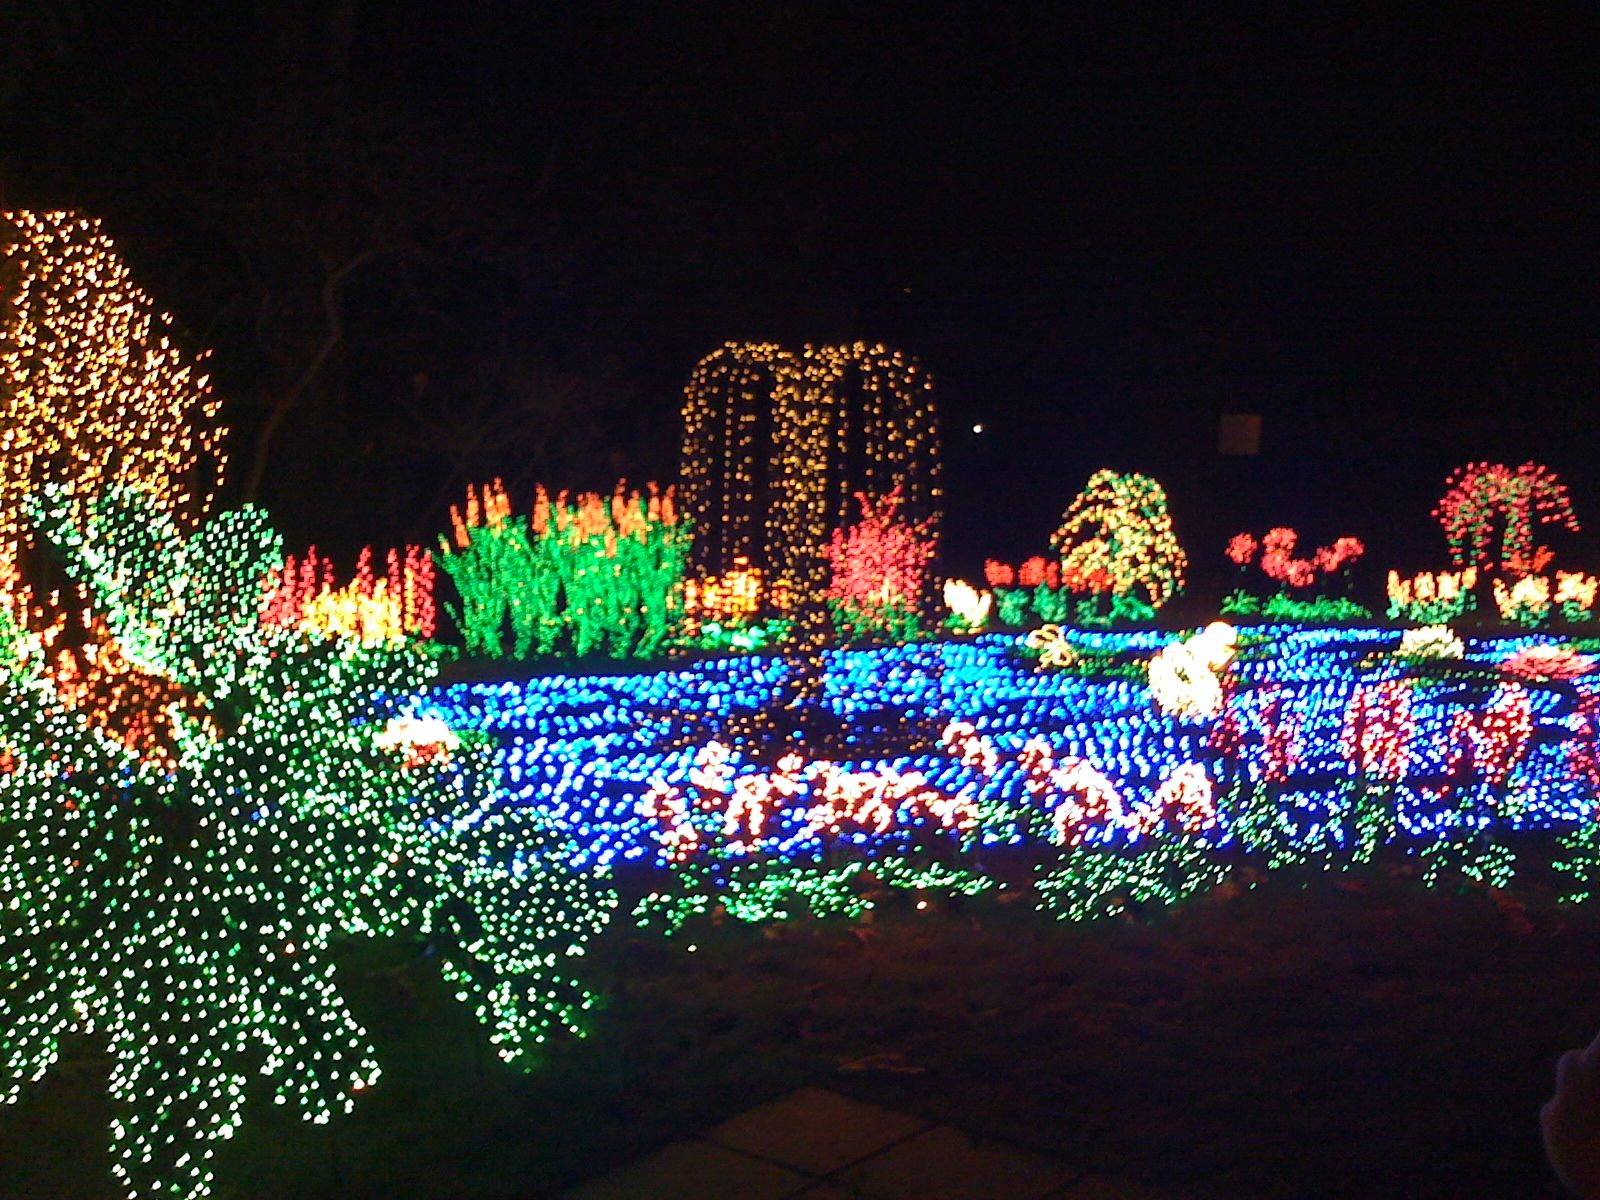 Holiday Lights are a great site at the Bellevue Botanical Gardens